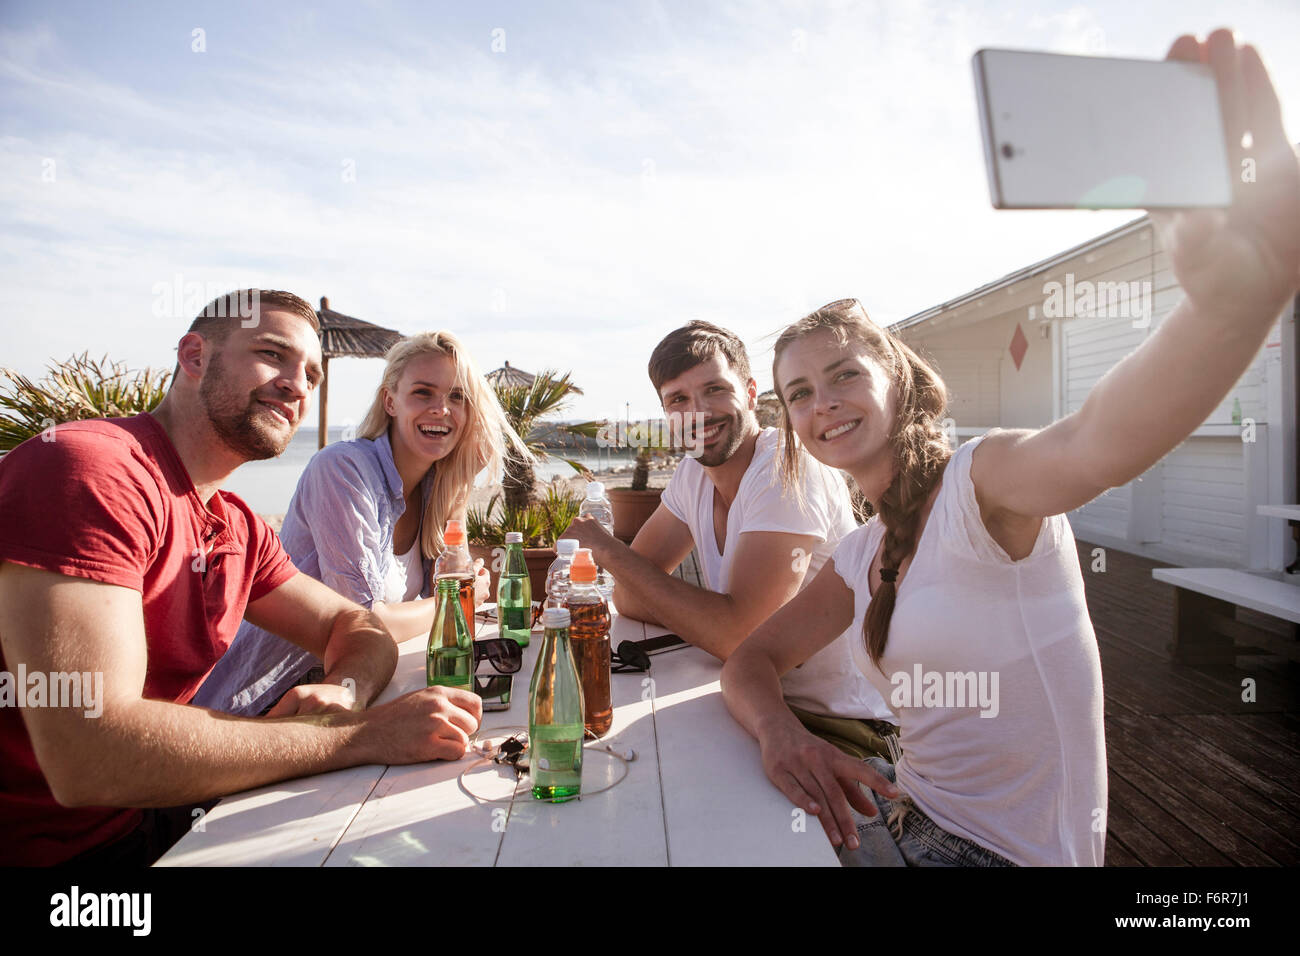 Group of friends taking a self portrait in beach bar Stock Photo